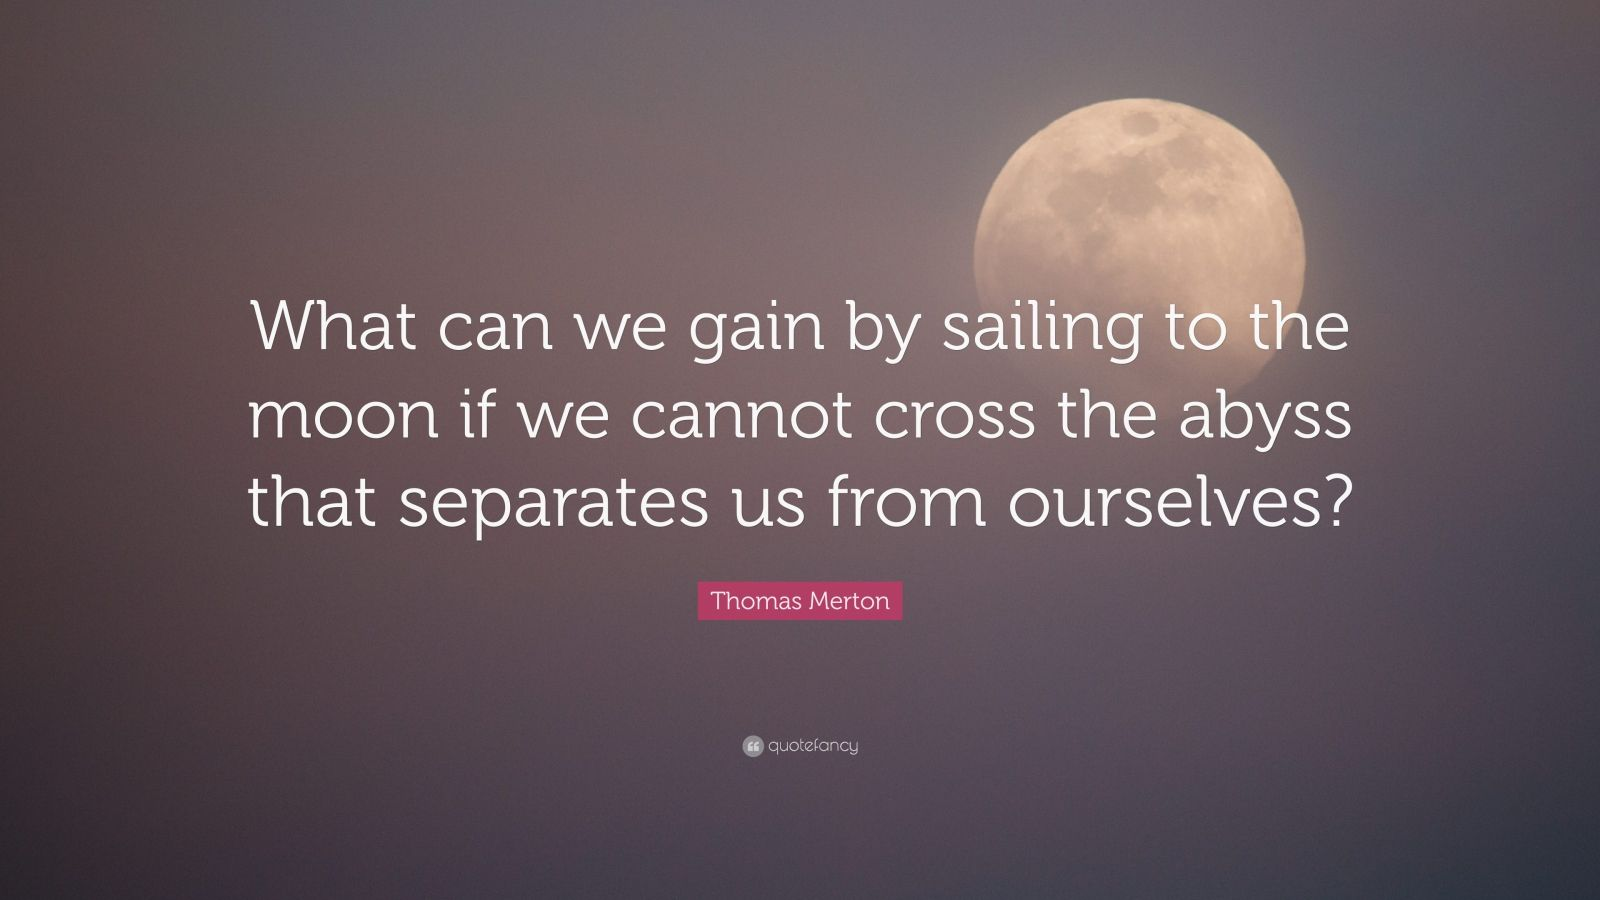 """Thomas Merton Quote: """"What can we gain by sailing to the moon if we cannot cross the abyss that separates us from ourselves?"""""""